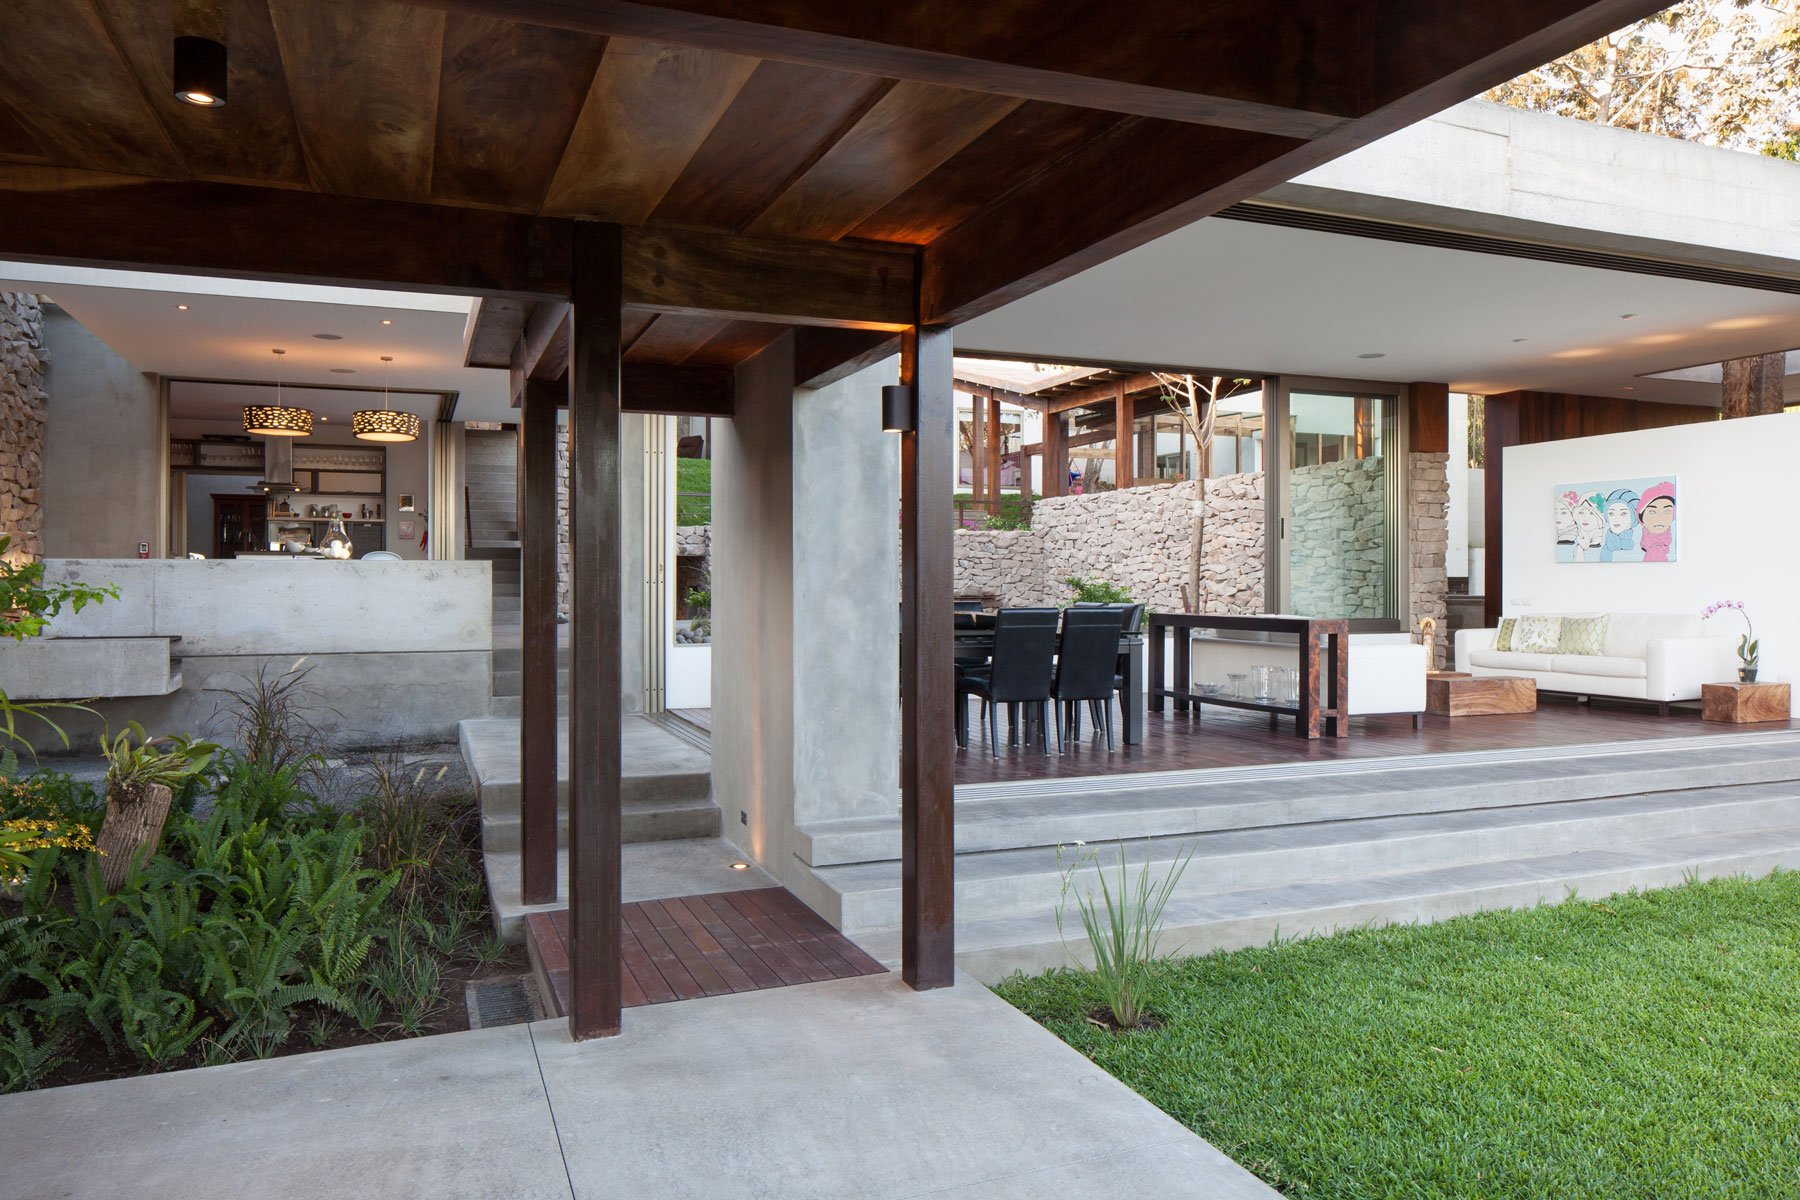 Modern rustic sensation of garden house in el salvador by for Garden design of house